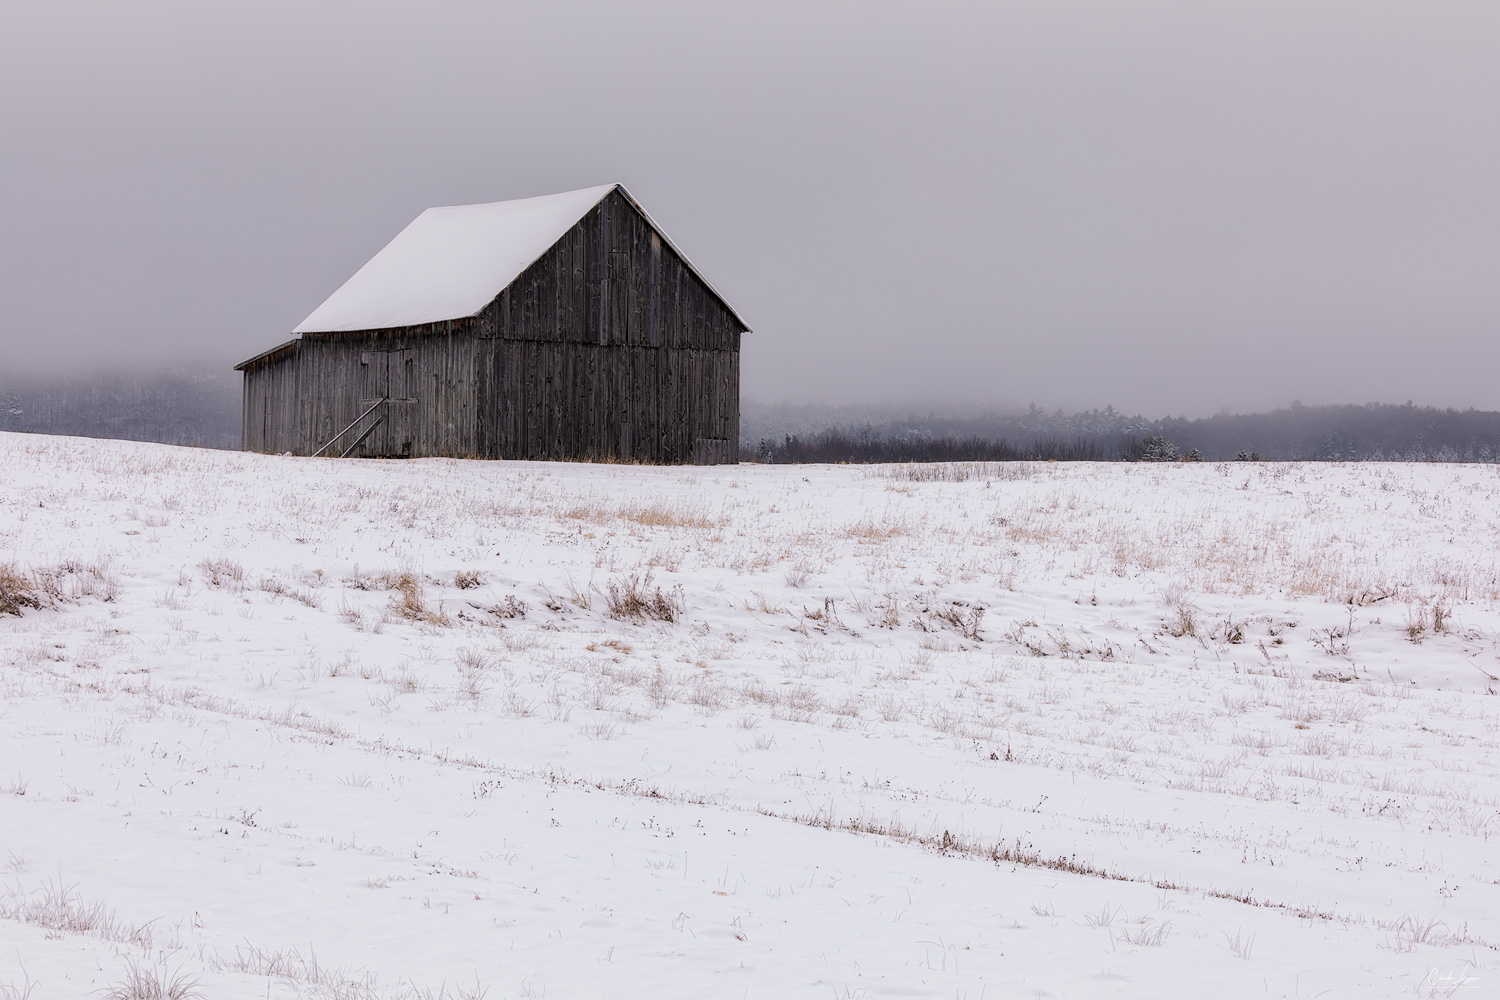 Barn covered in snow in Ripon in Queben, Canada.